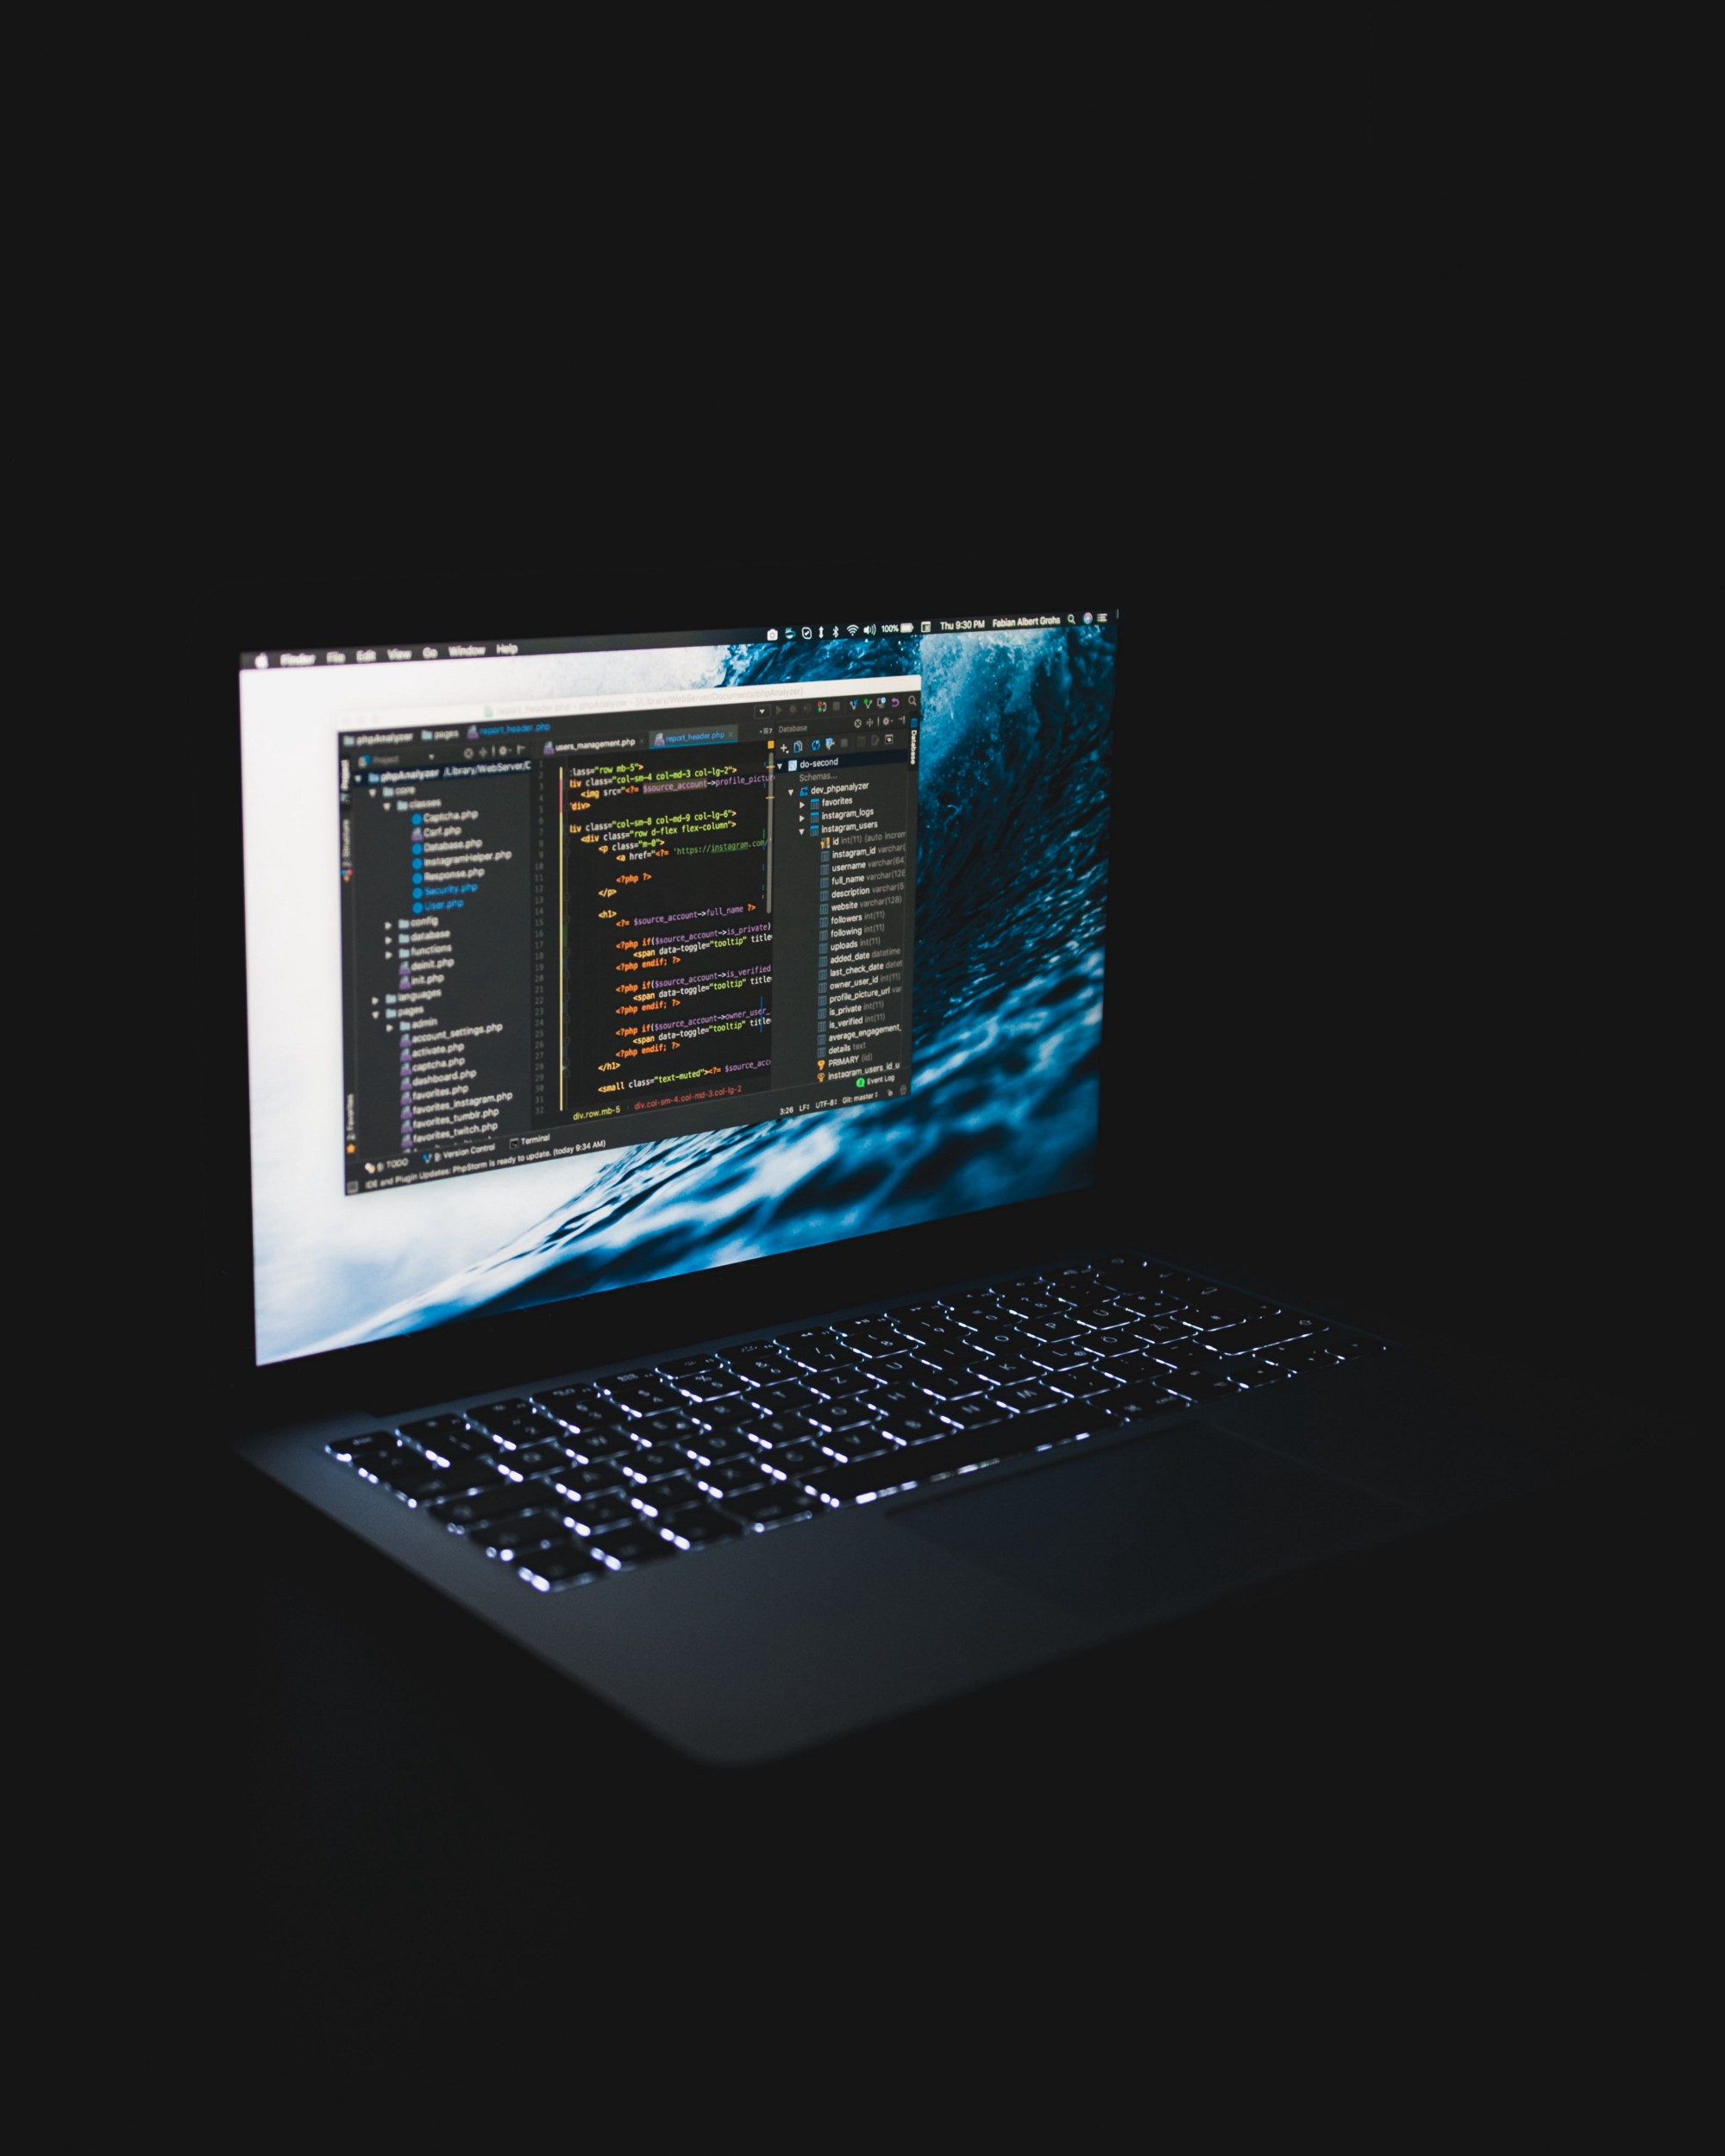 An apple laptop in a dark room with vscode running